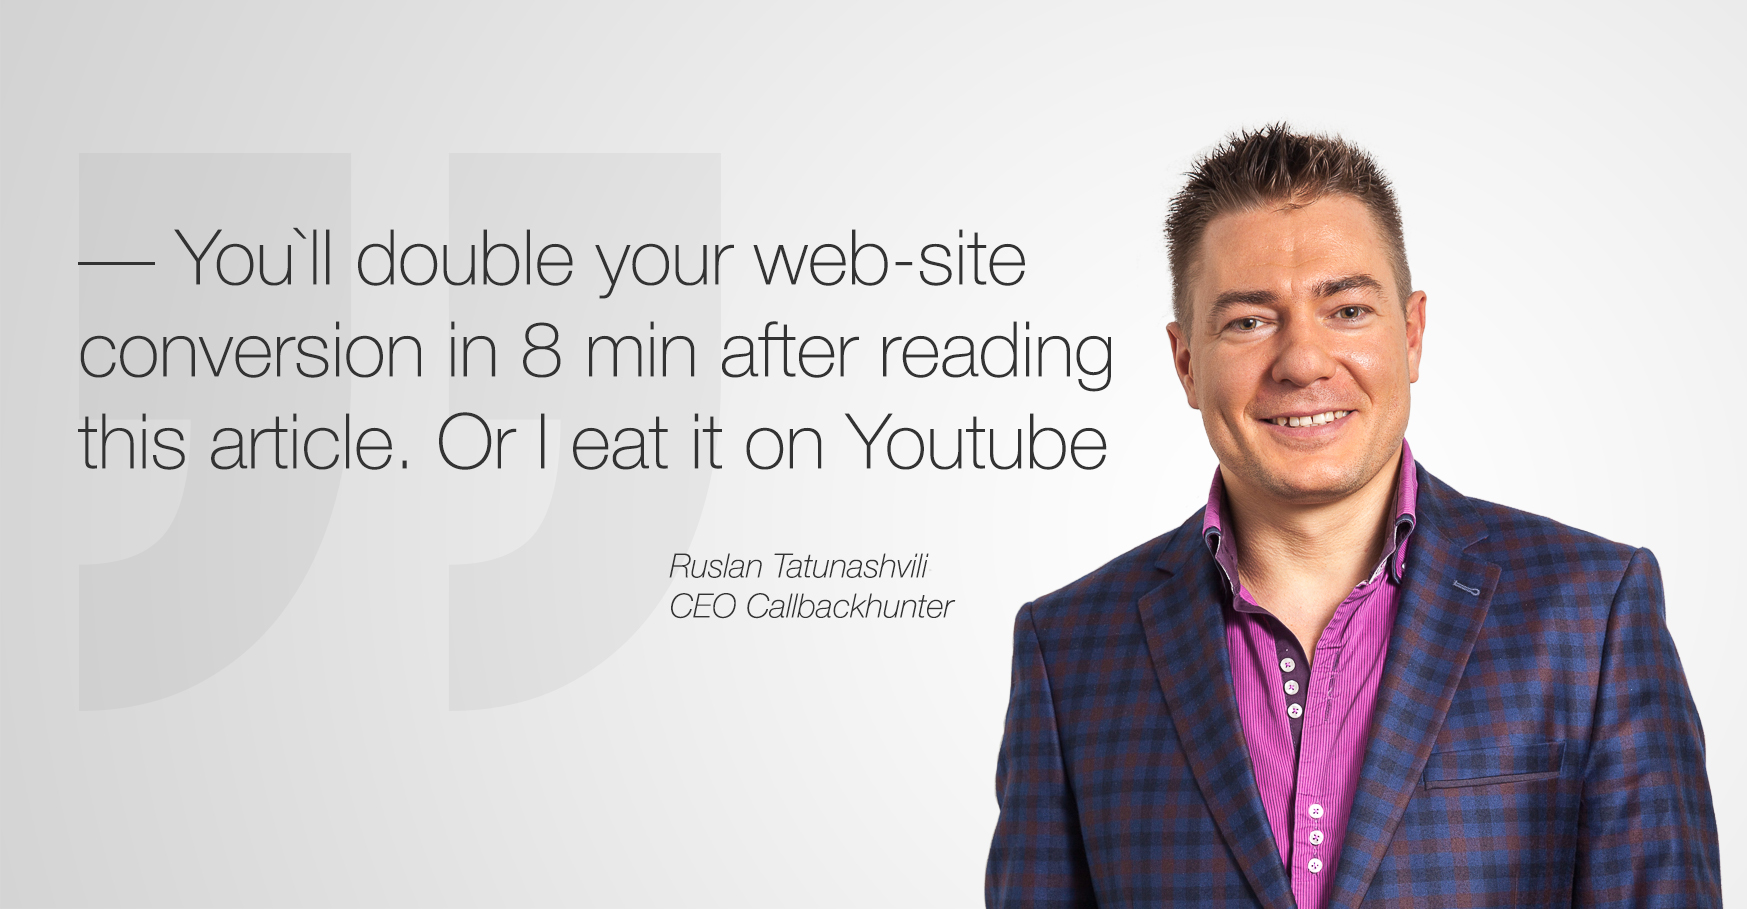 You will double your web-site conversion in 8 min after reading this article.